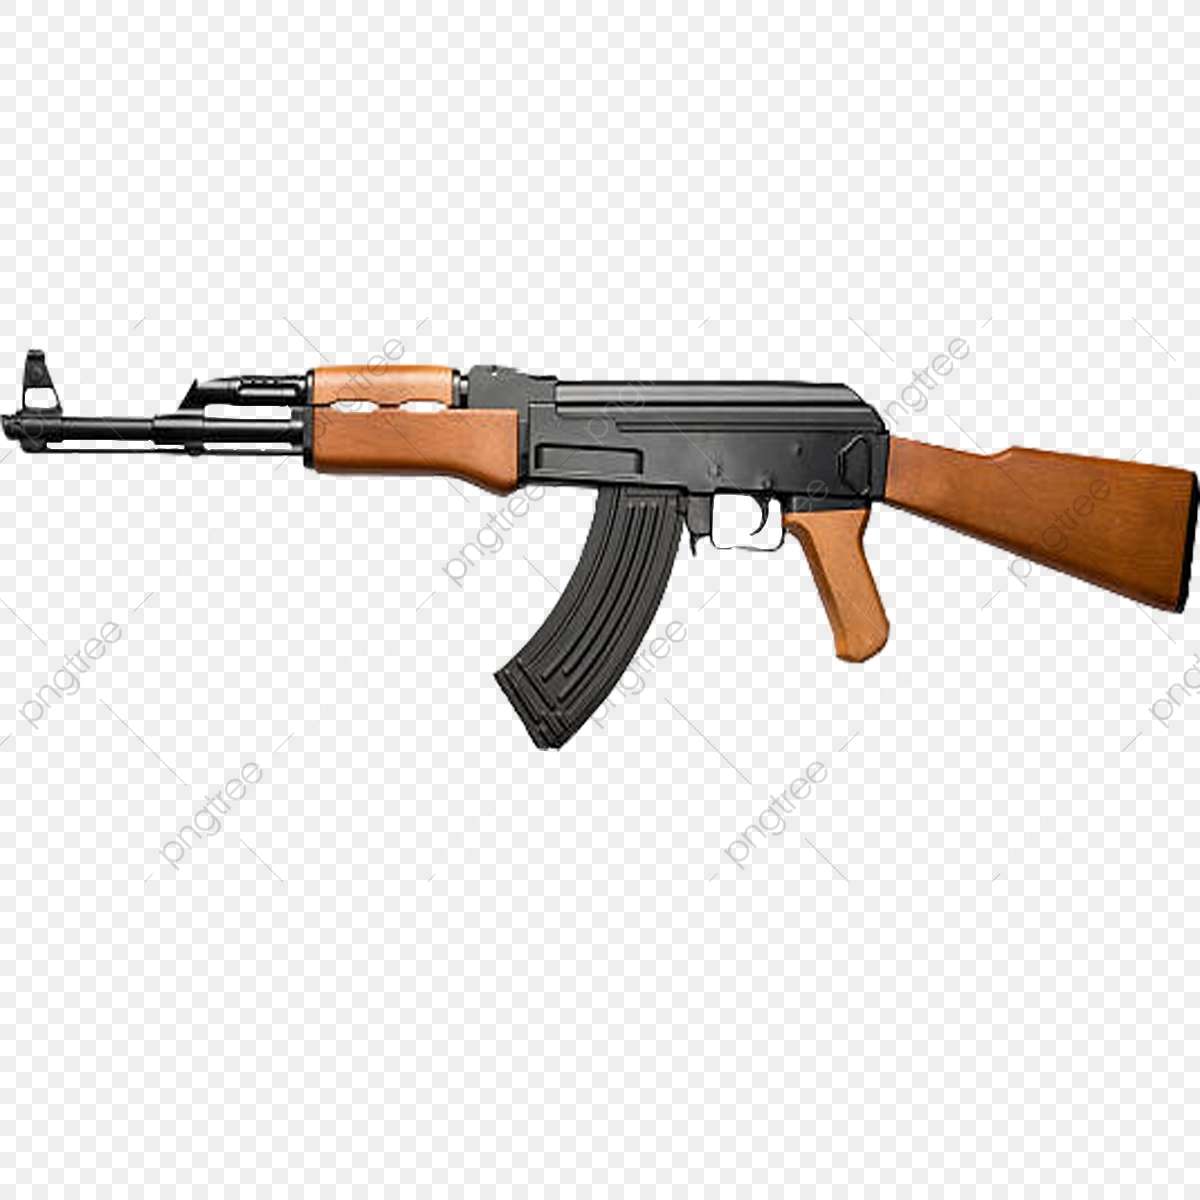 Ak 47, Ak47, Weapon, Russian PNG Transparent Clipart Image and PSD.